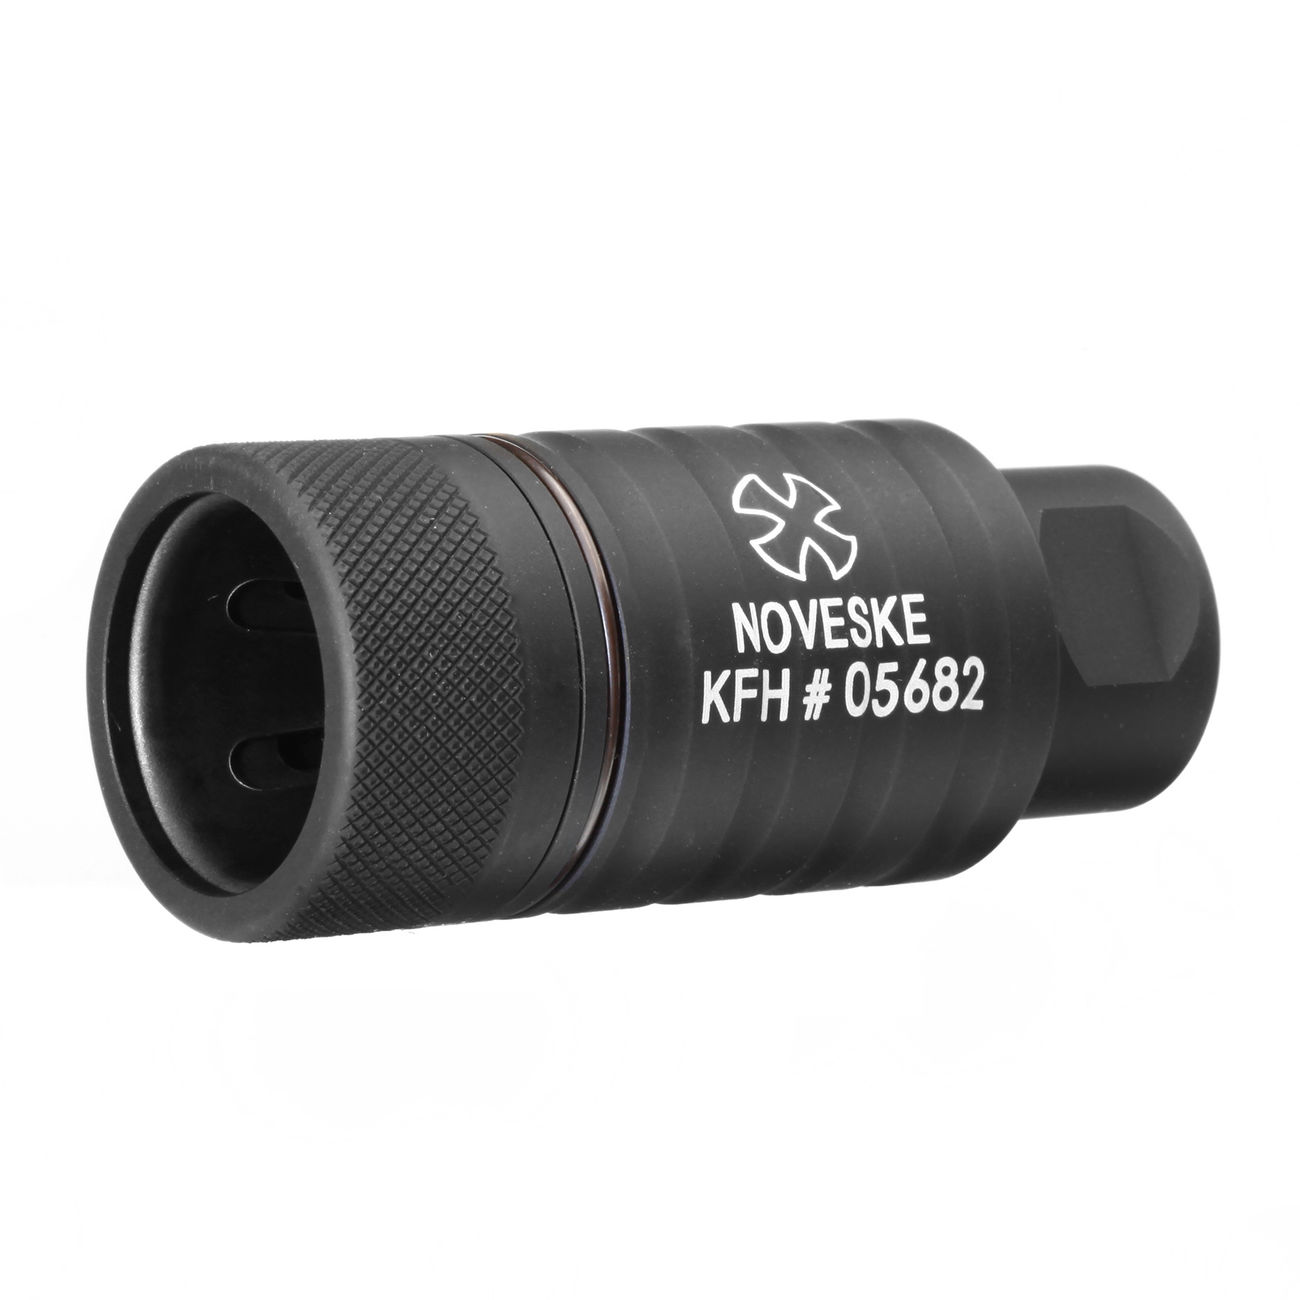 MadBull / Noveske KFH Aluminium Amplifier Flash-Hider schwarz 14mm+ 0